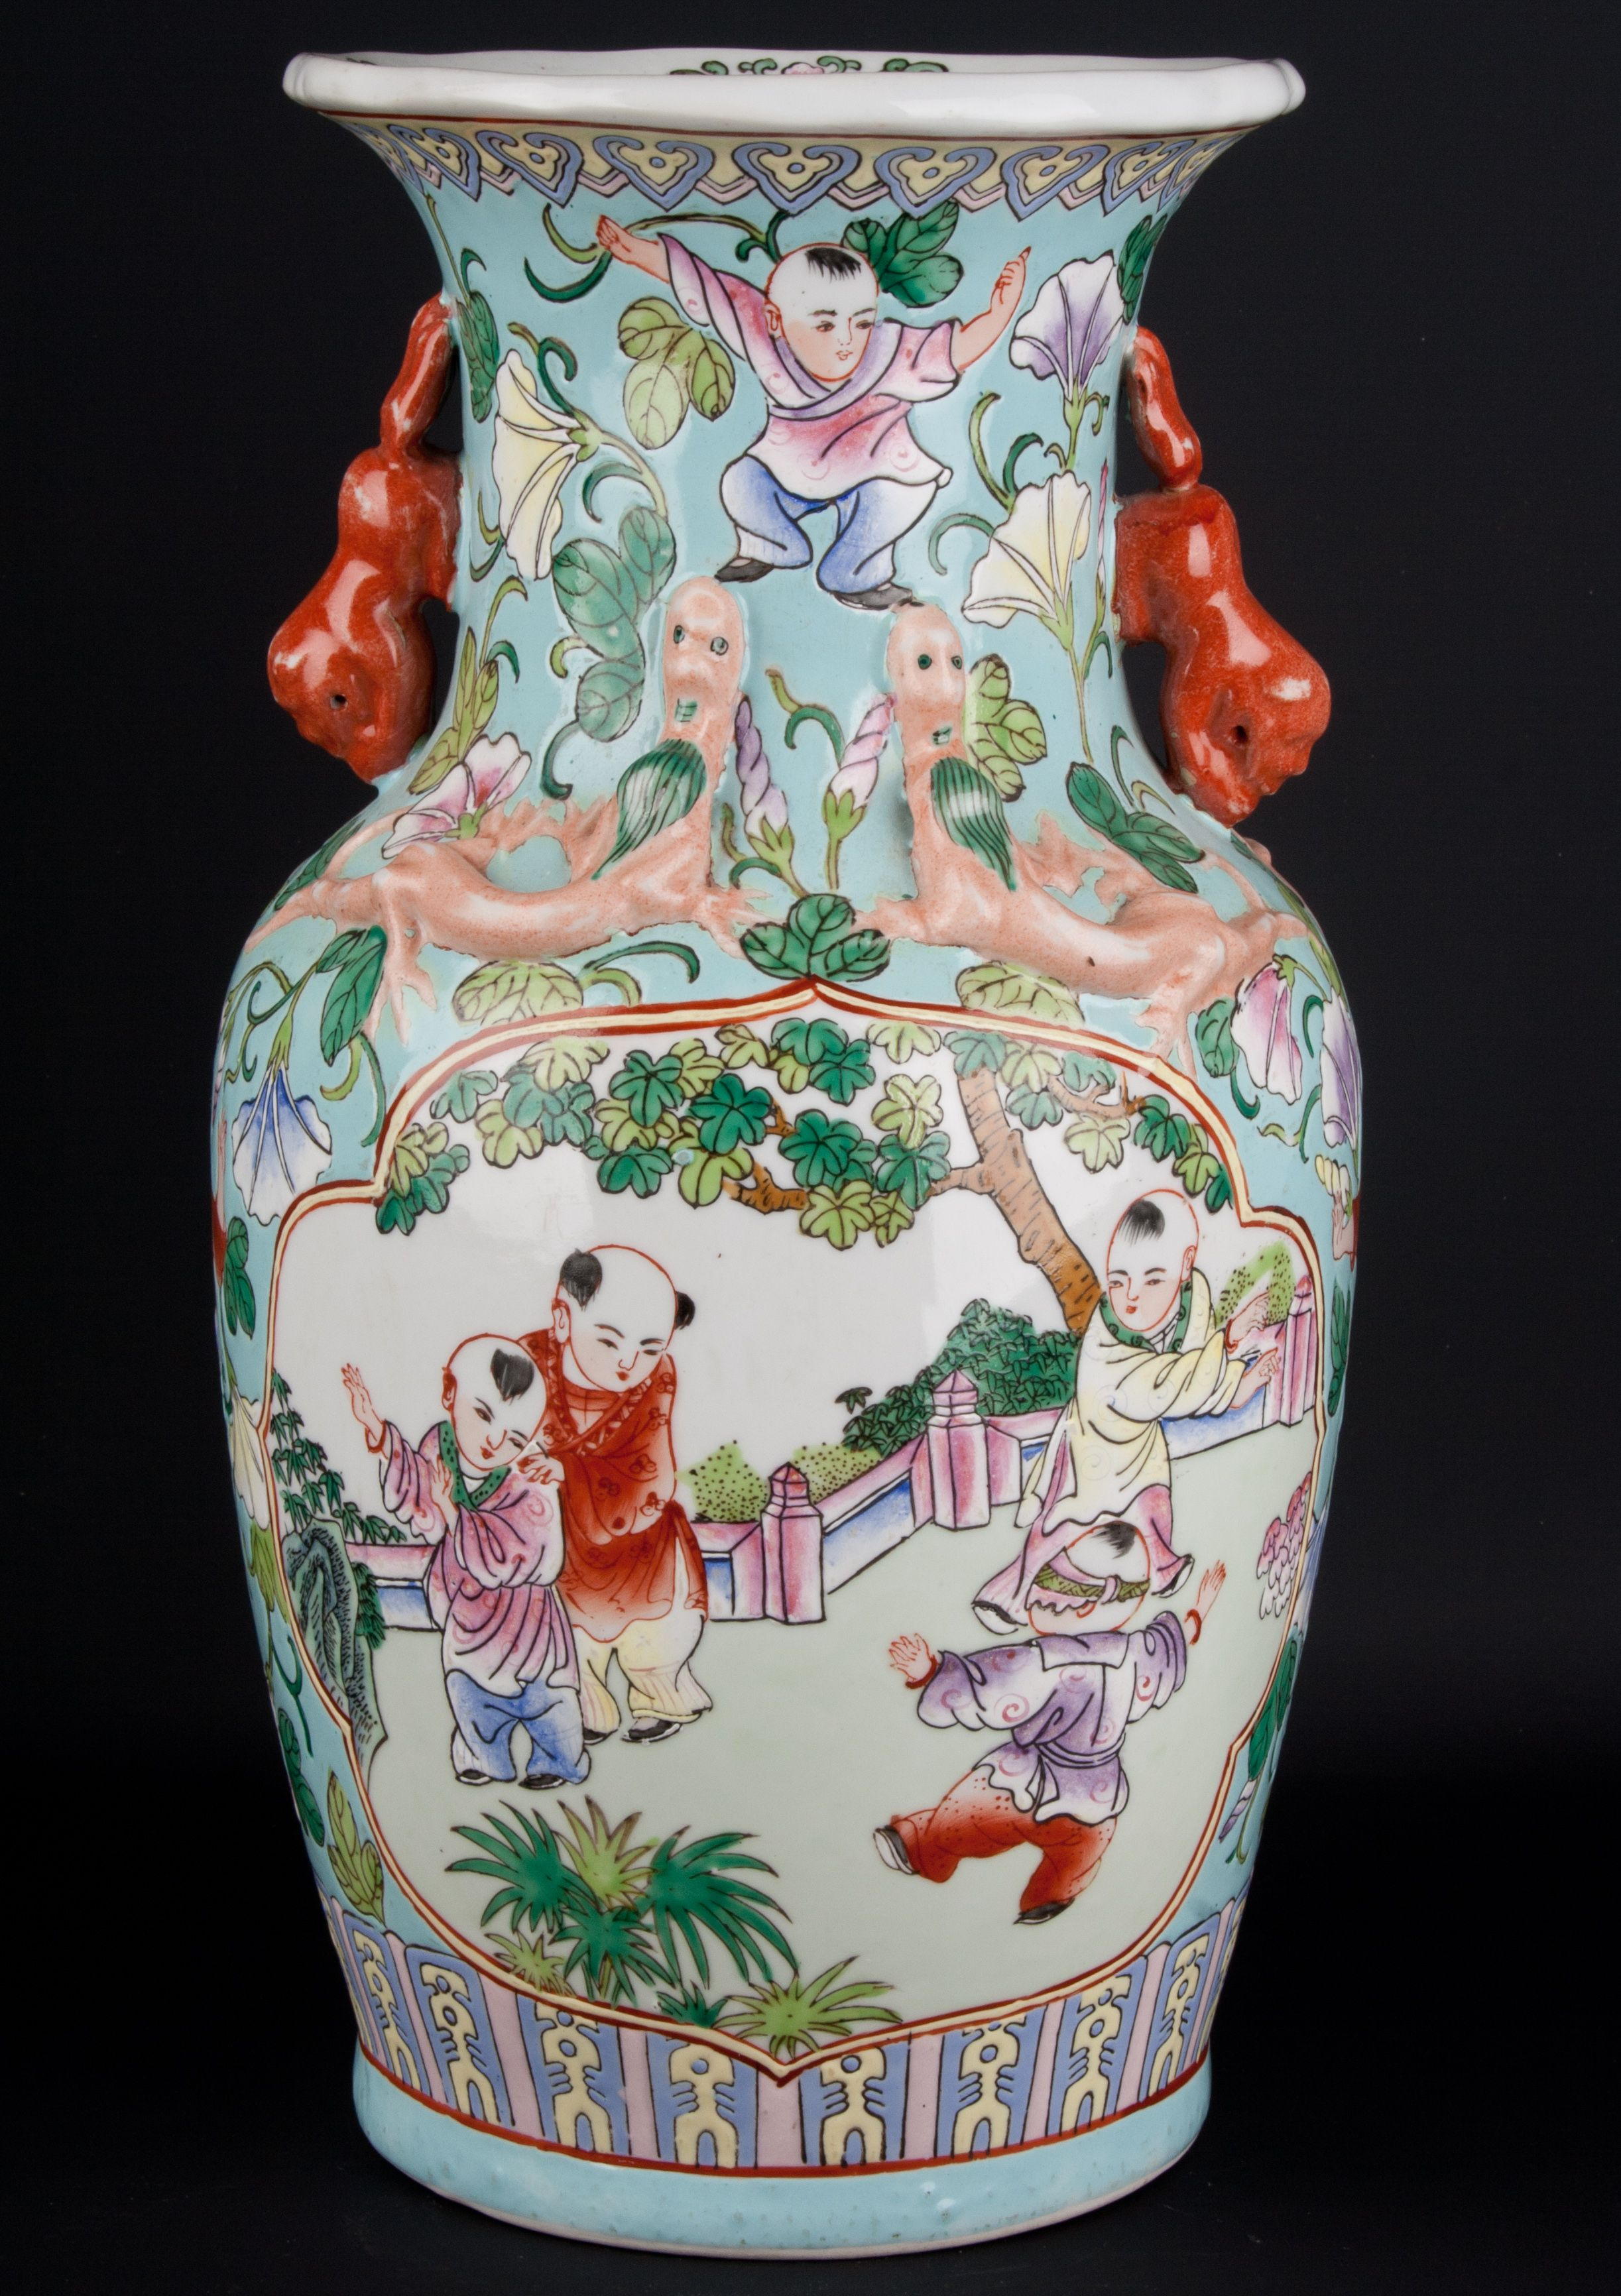 Description a chinese baluster vase in early 19th century canton description a chinese baluster vase in early 19th century canton style decorated reviewsmspy